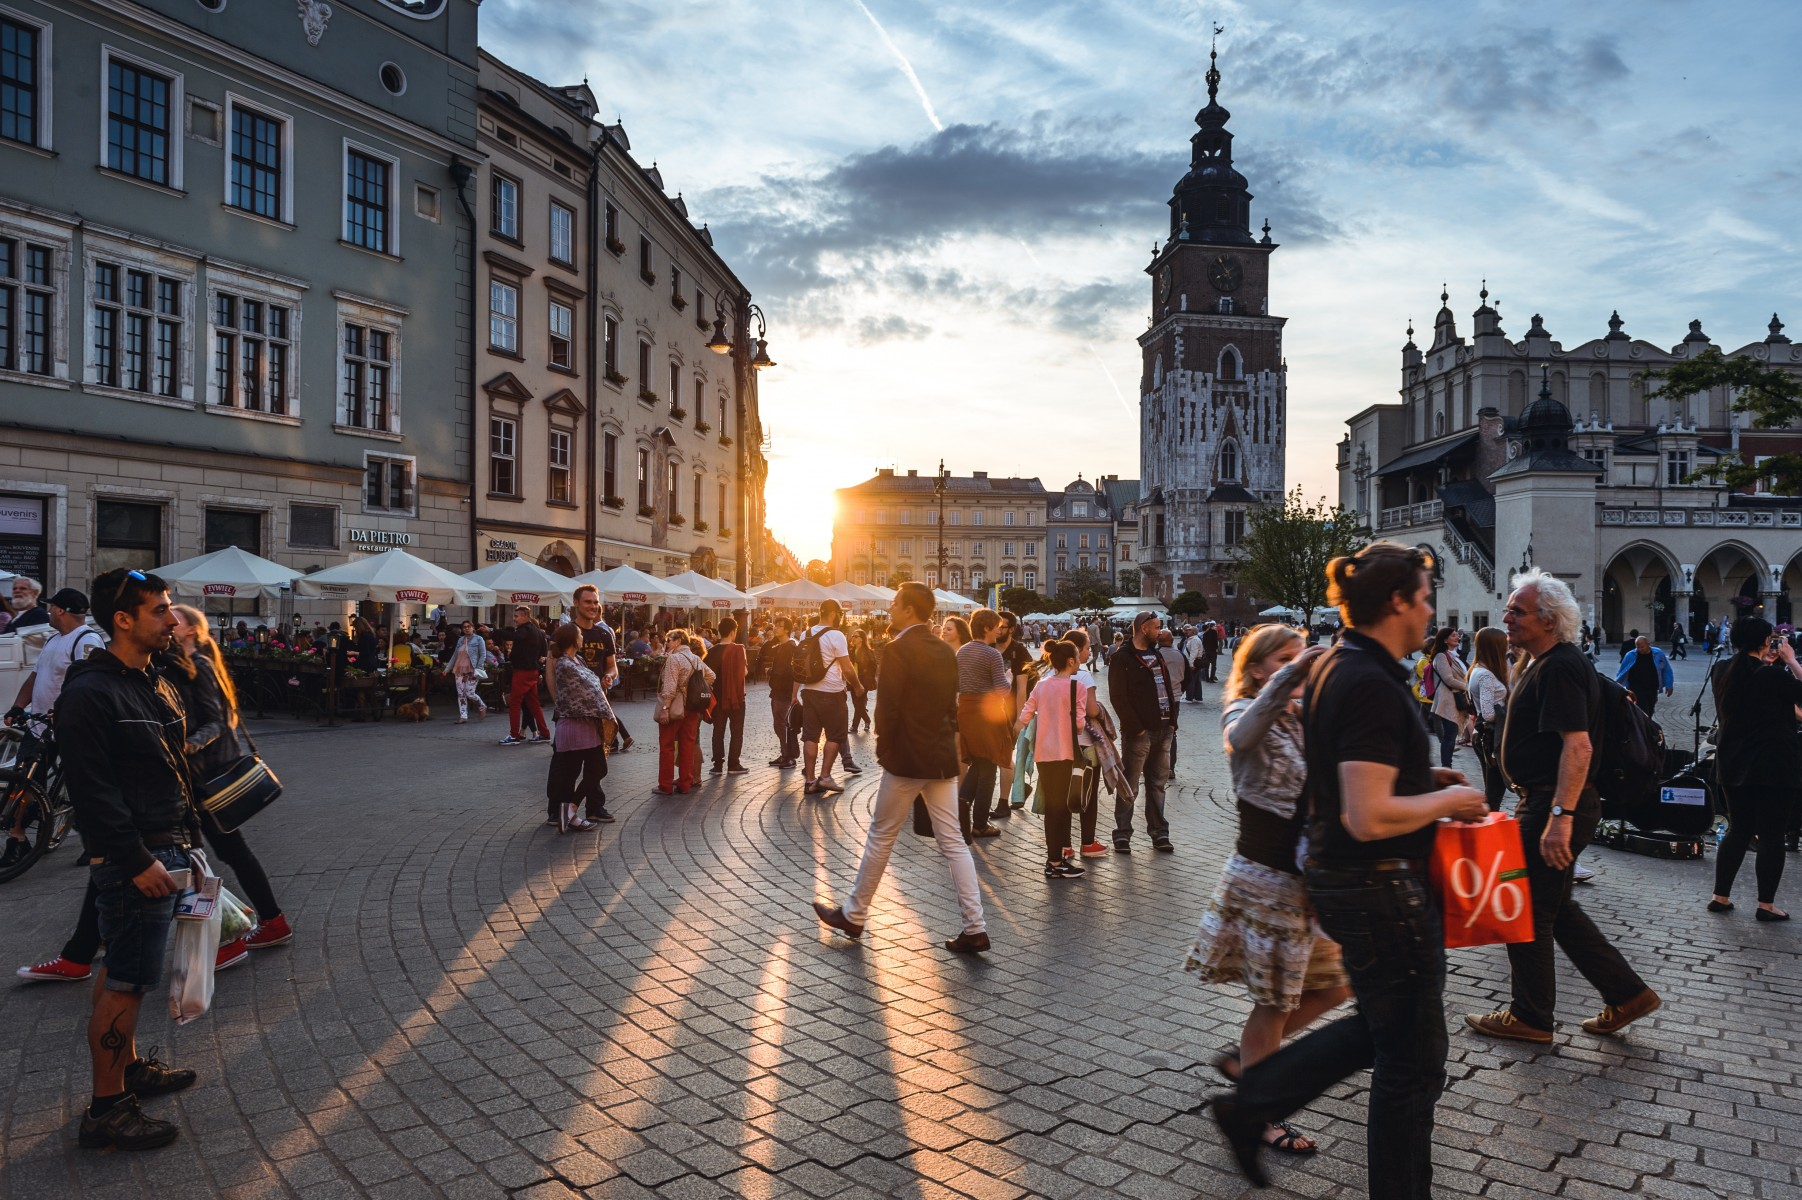 Krakow_Photo by Jacek Dylag on Unsplash